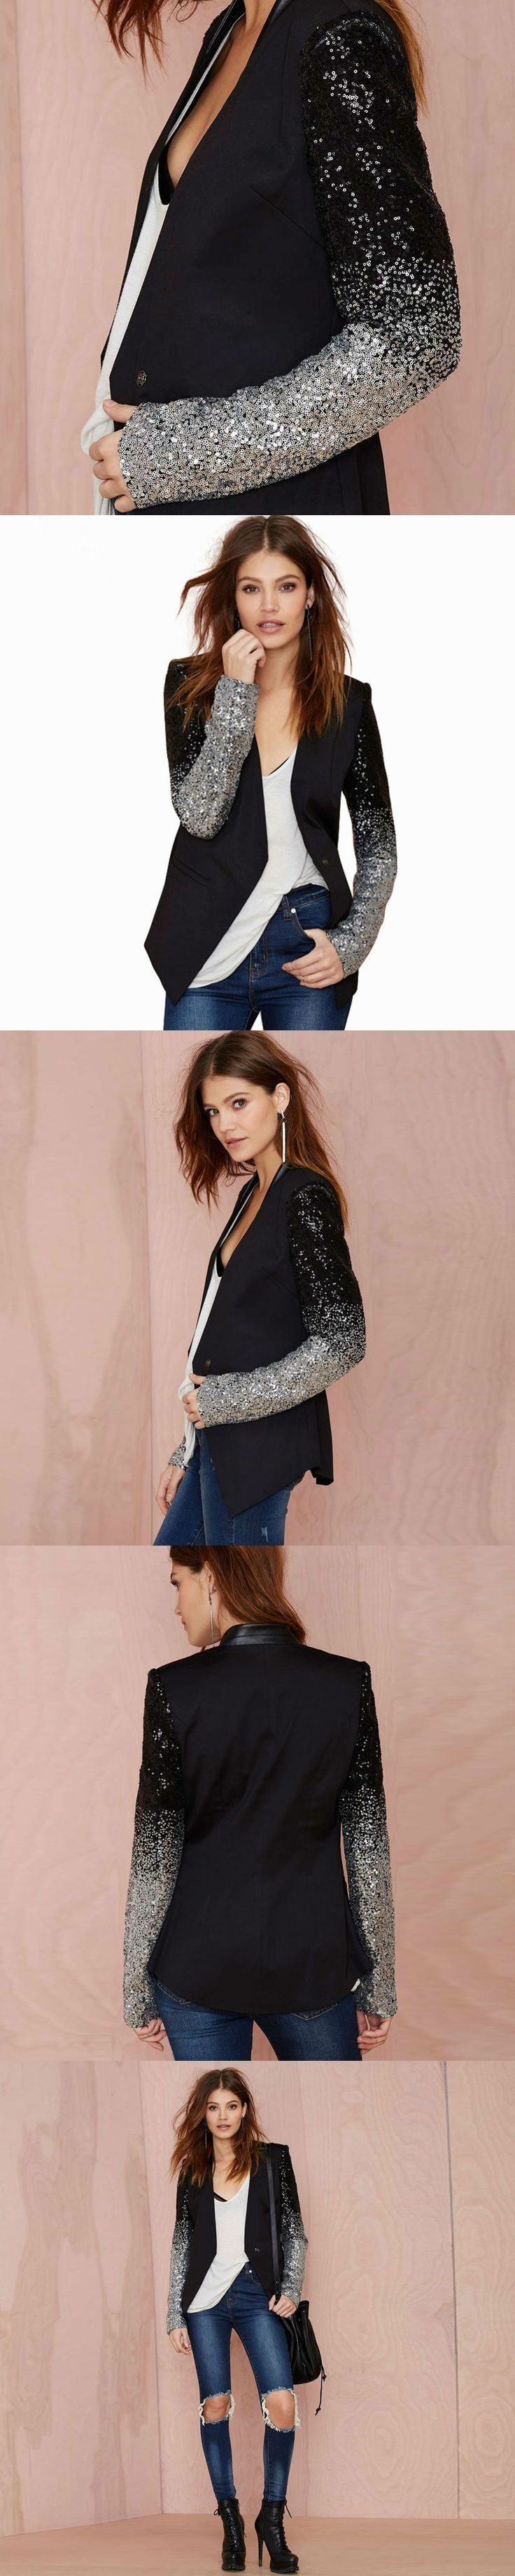 Women Spring New Fashion PU Patchwork Blazer Mujer Black Silver Embroidered Sequins Full Sleeve Winter Coat Outwear